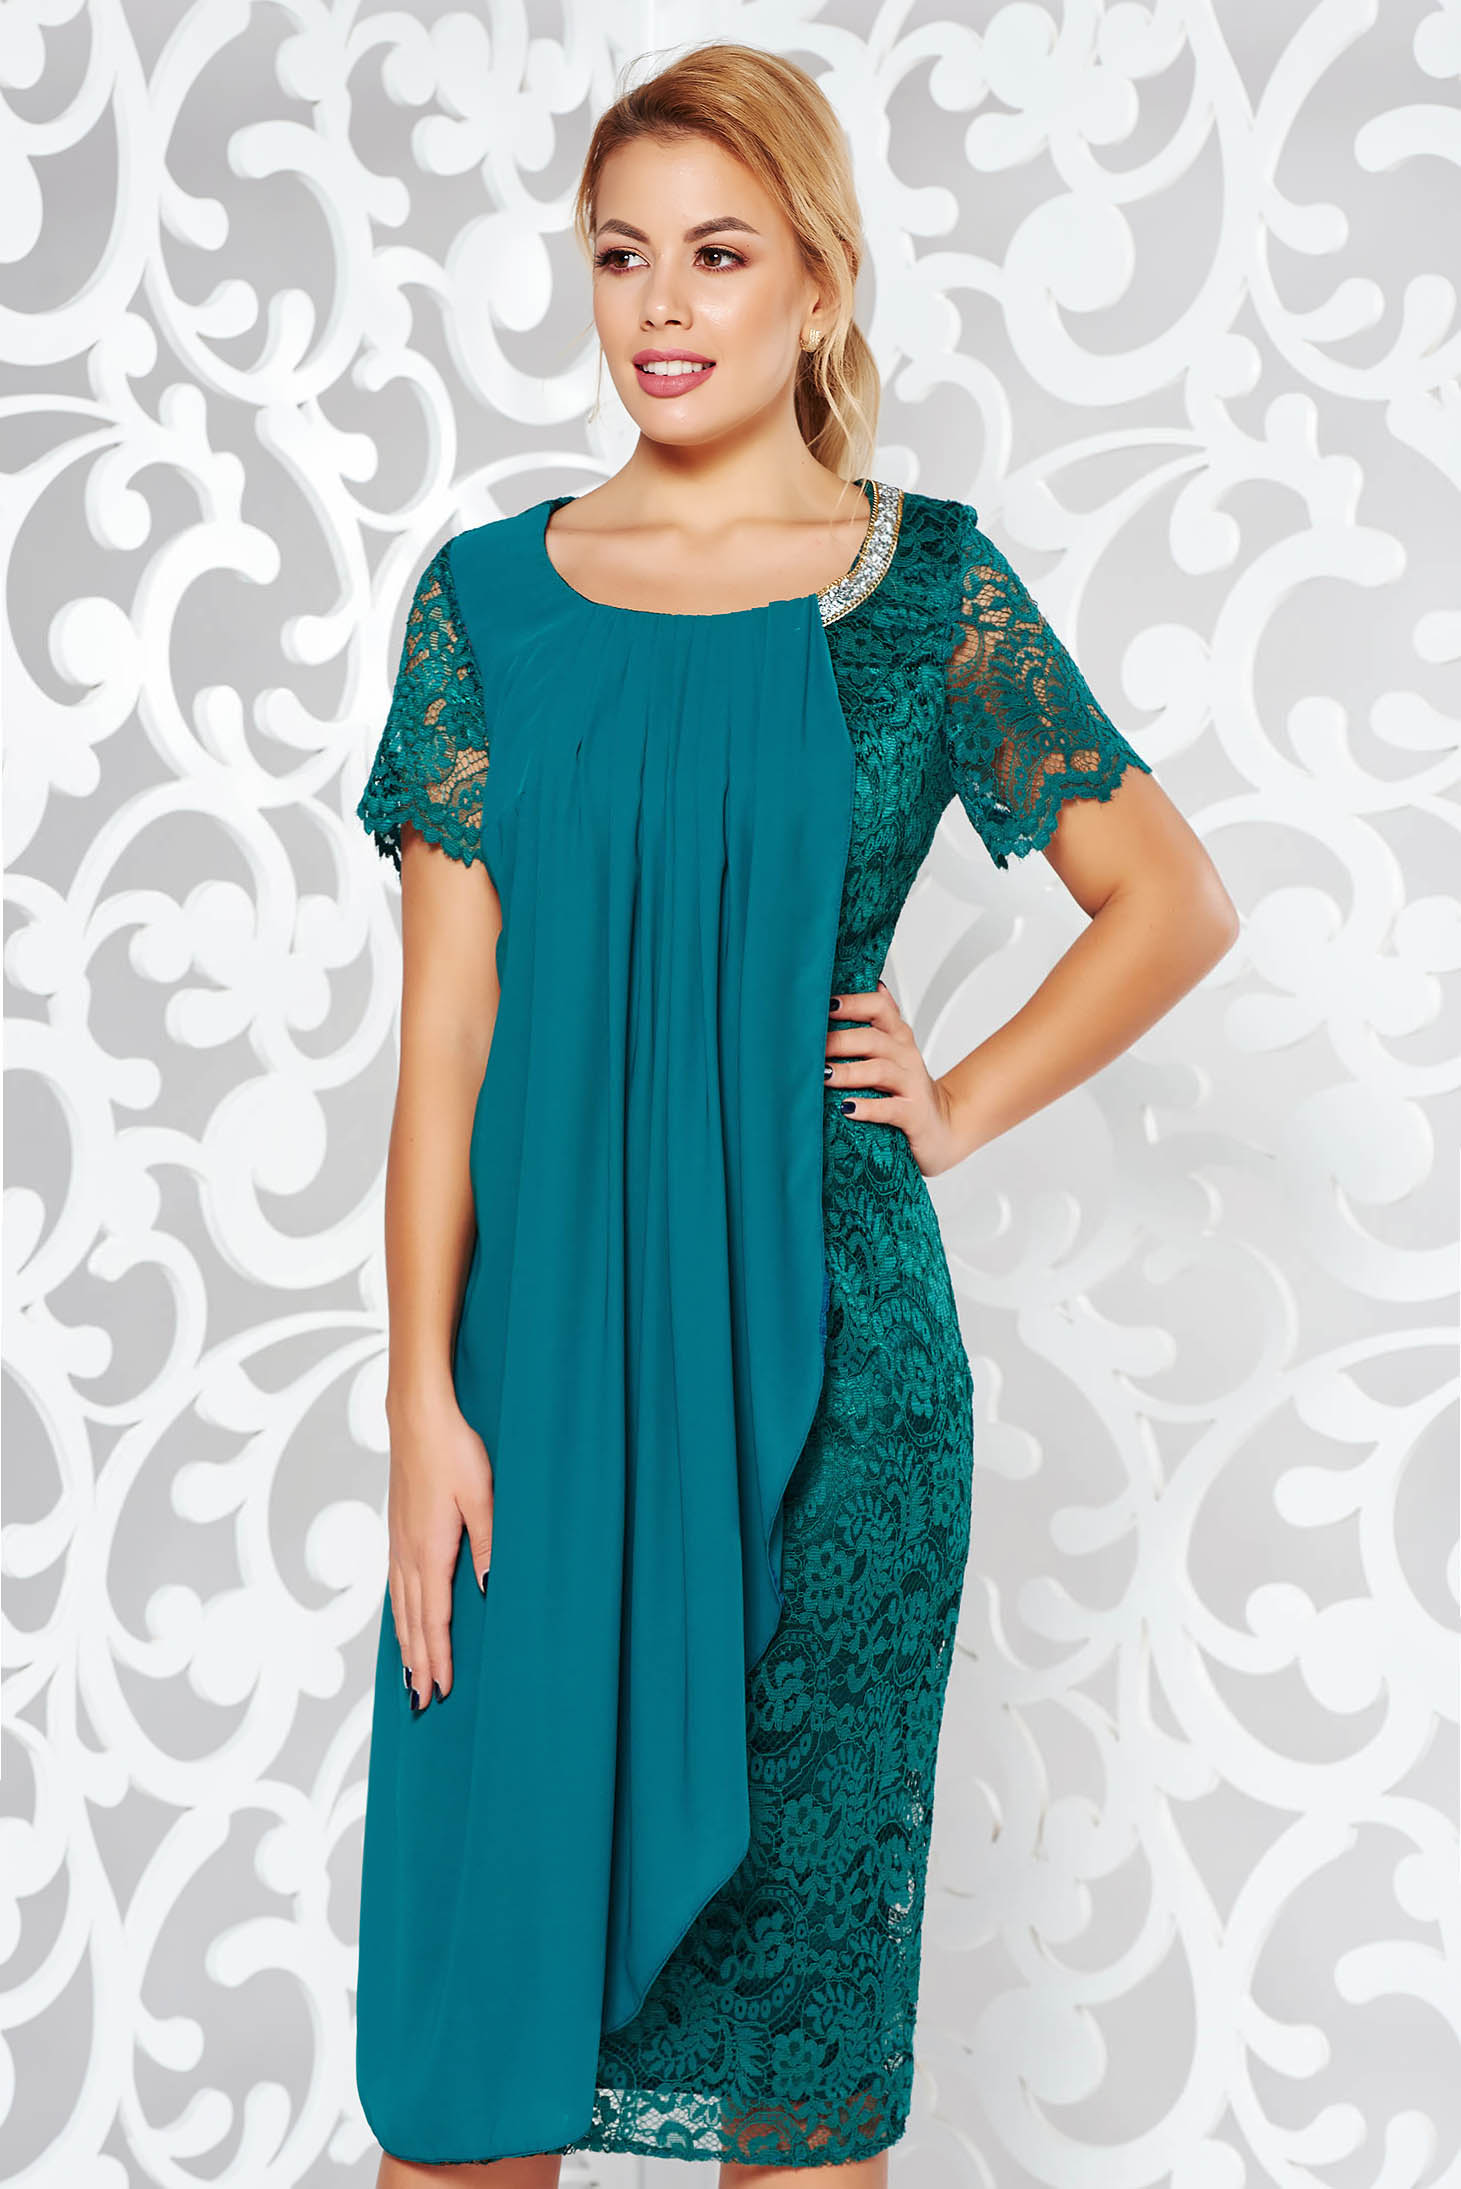 Green occasional pencil dress laced with inside lining voile overlay with bright details